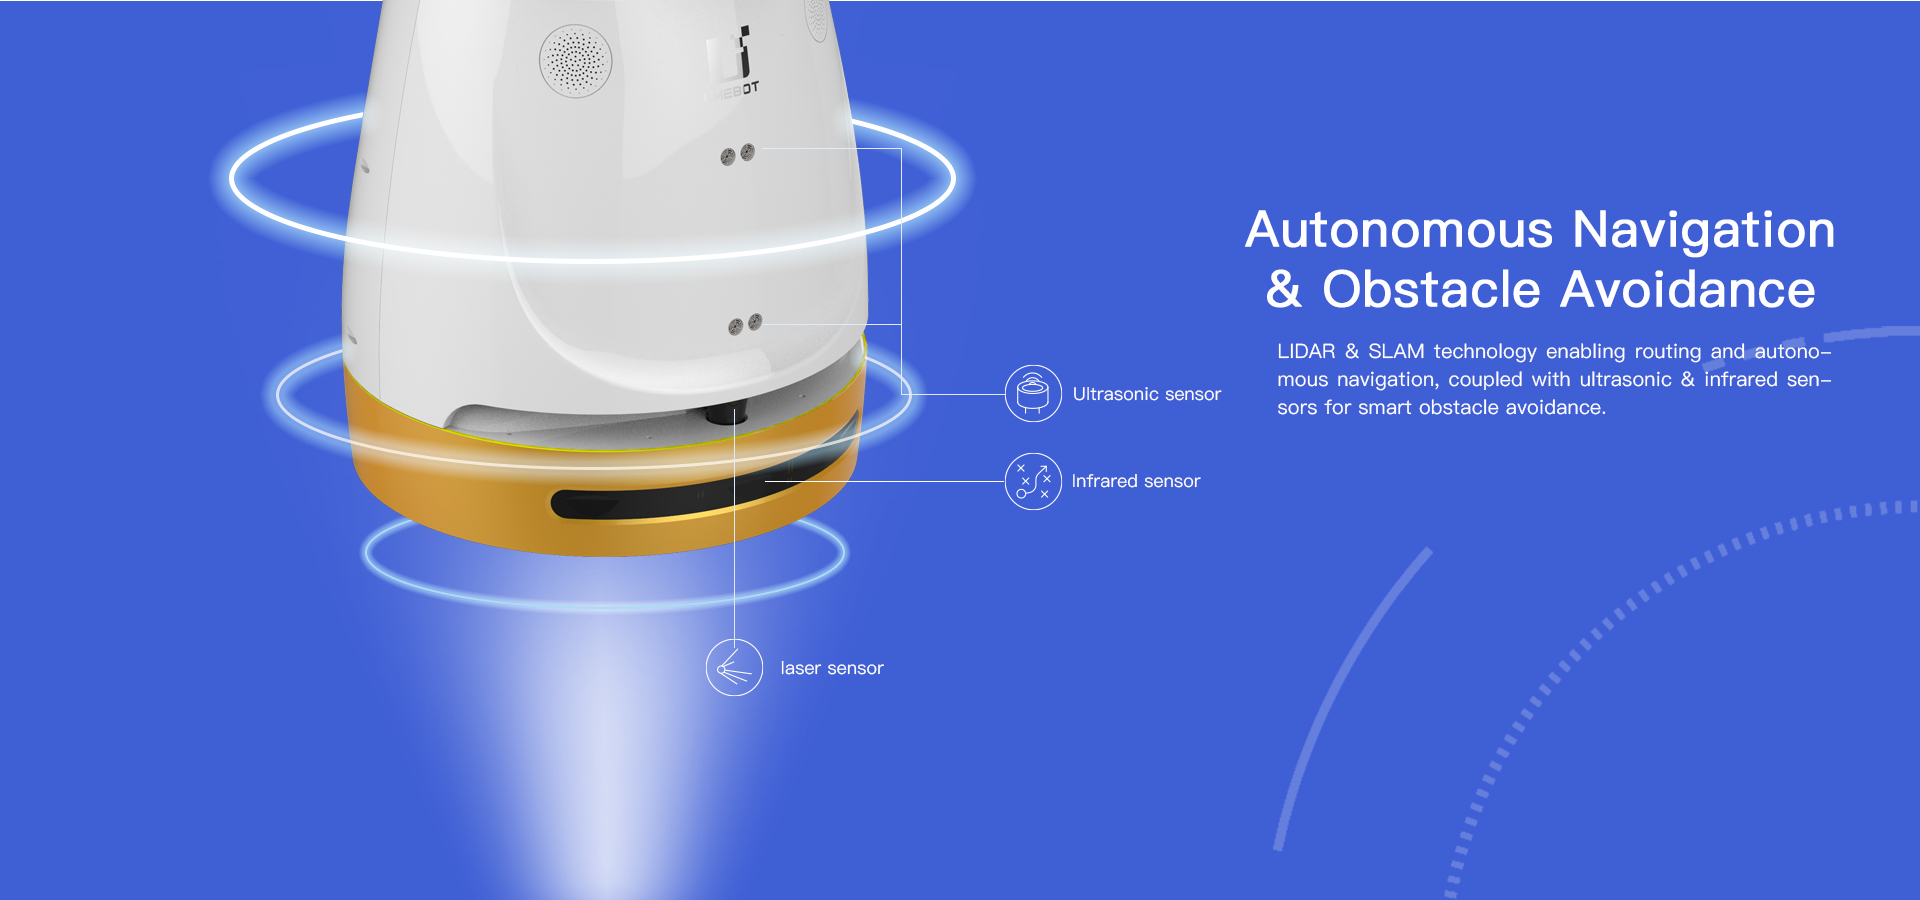 Anyoumi Commercial Service Robot II